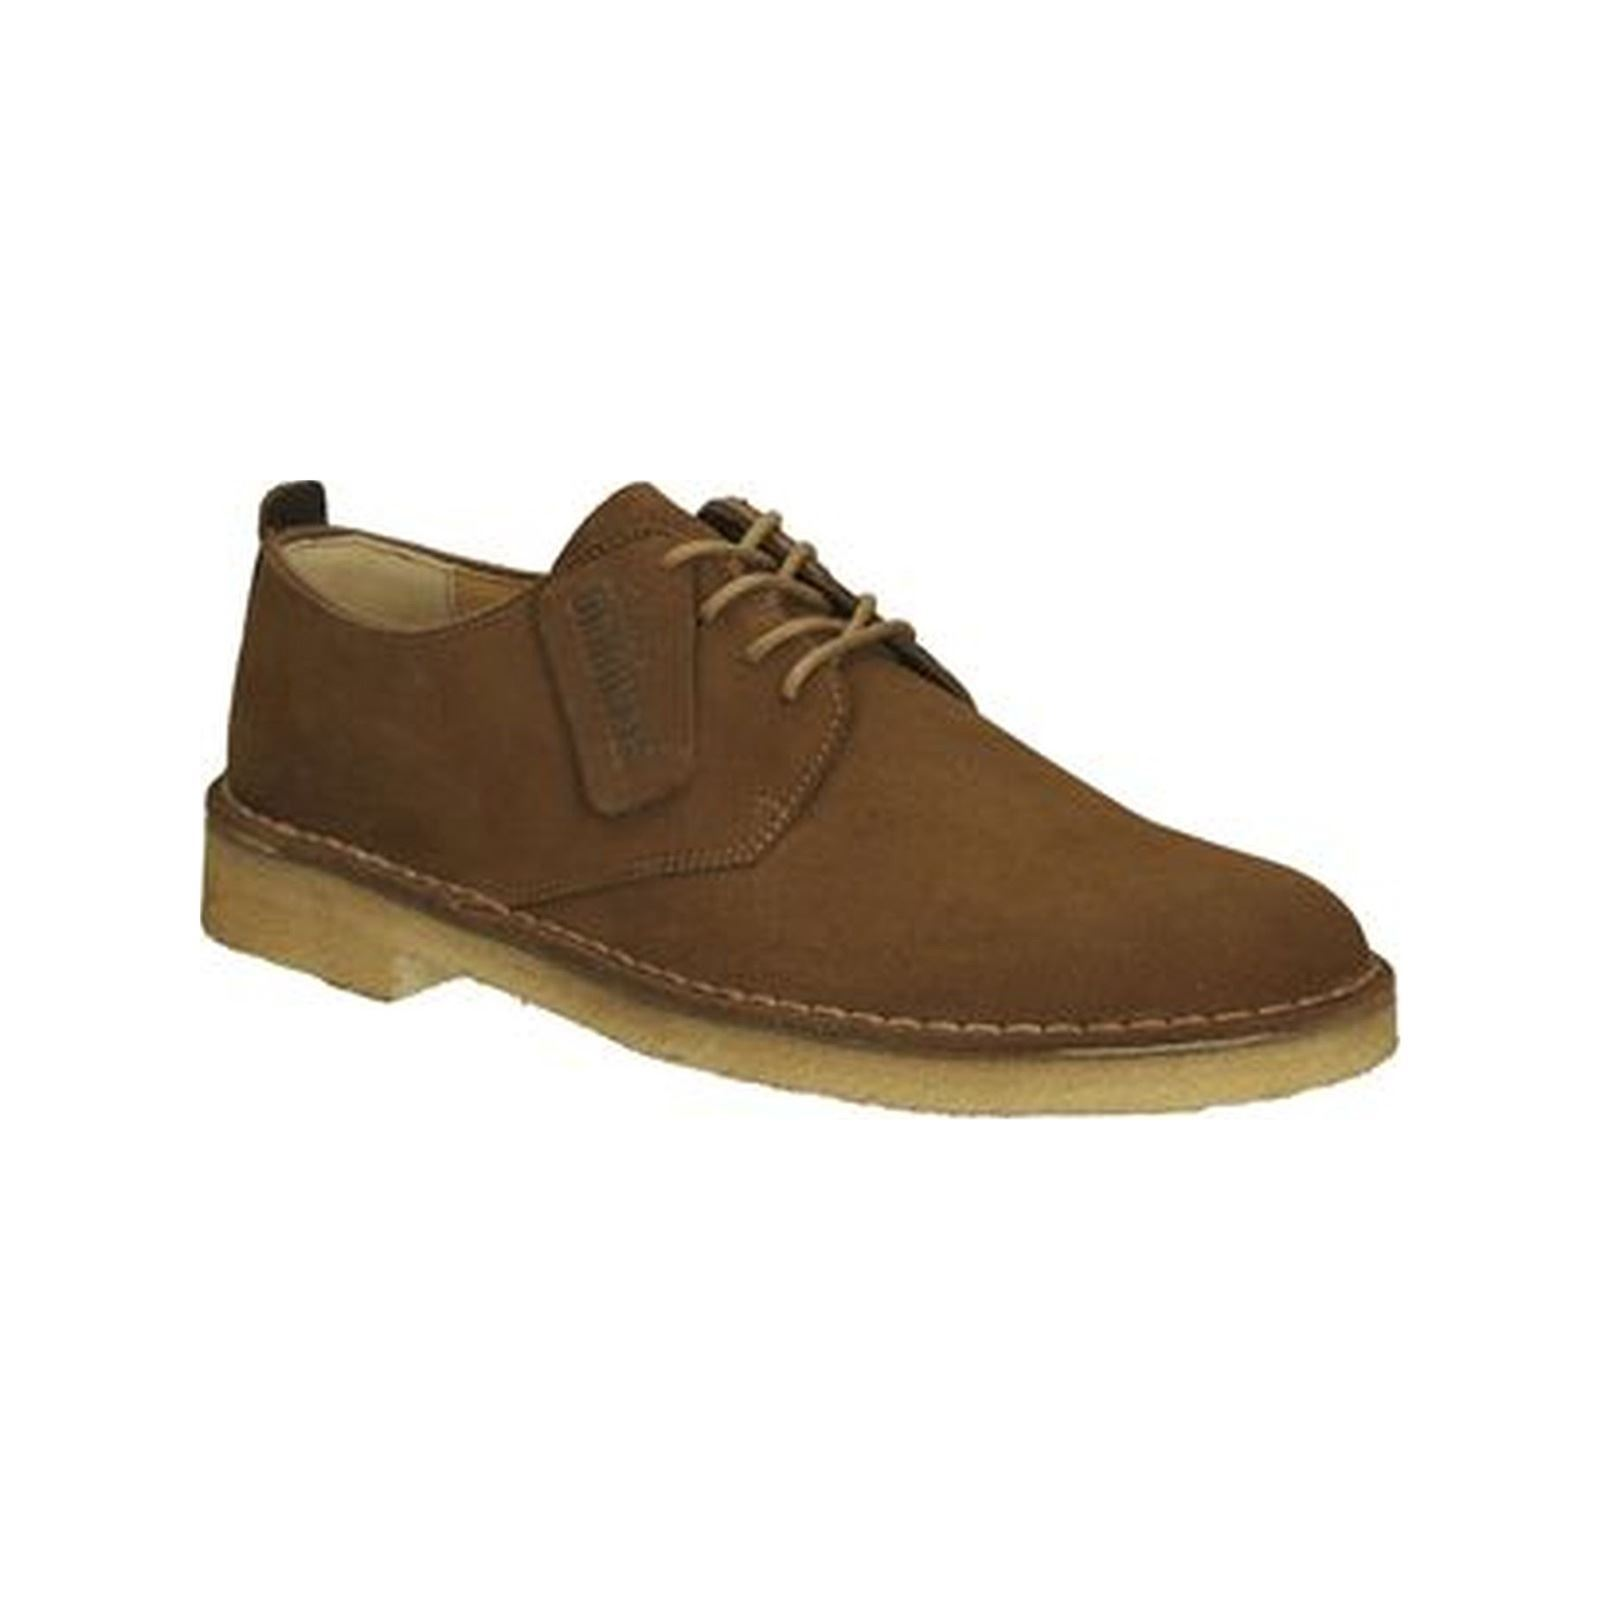 London Clarks Brandalley Camel Originals Desert Derbies wTTxz7qHU